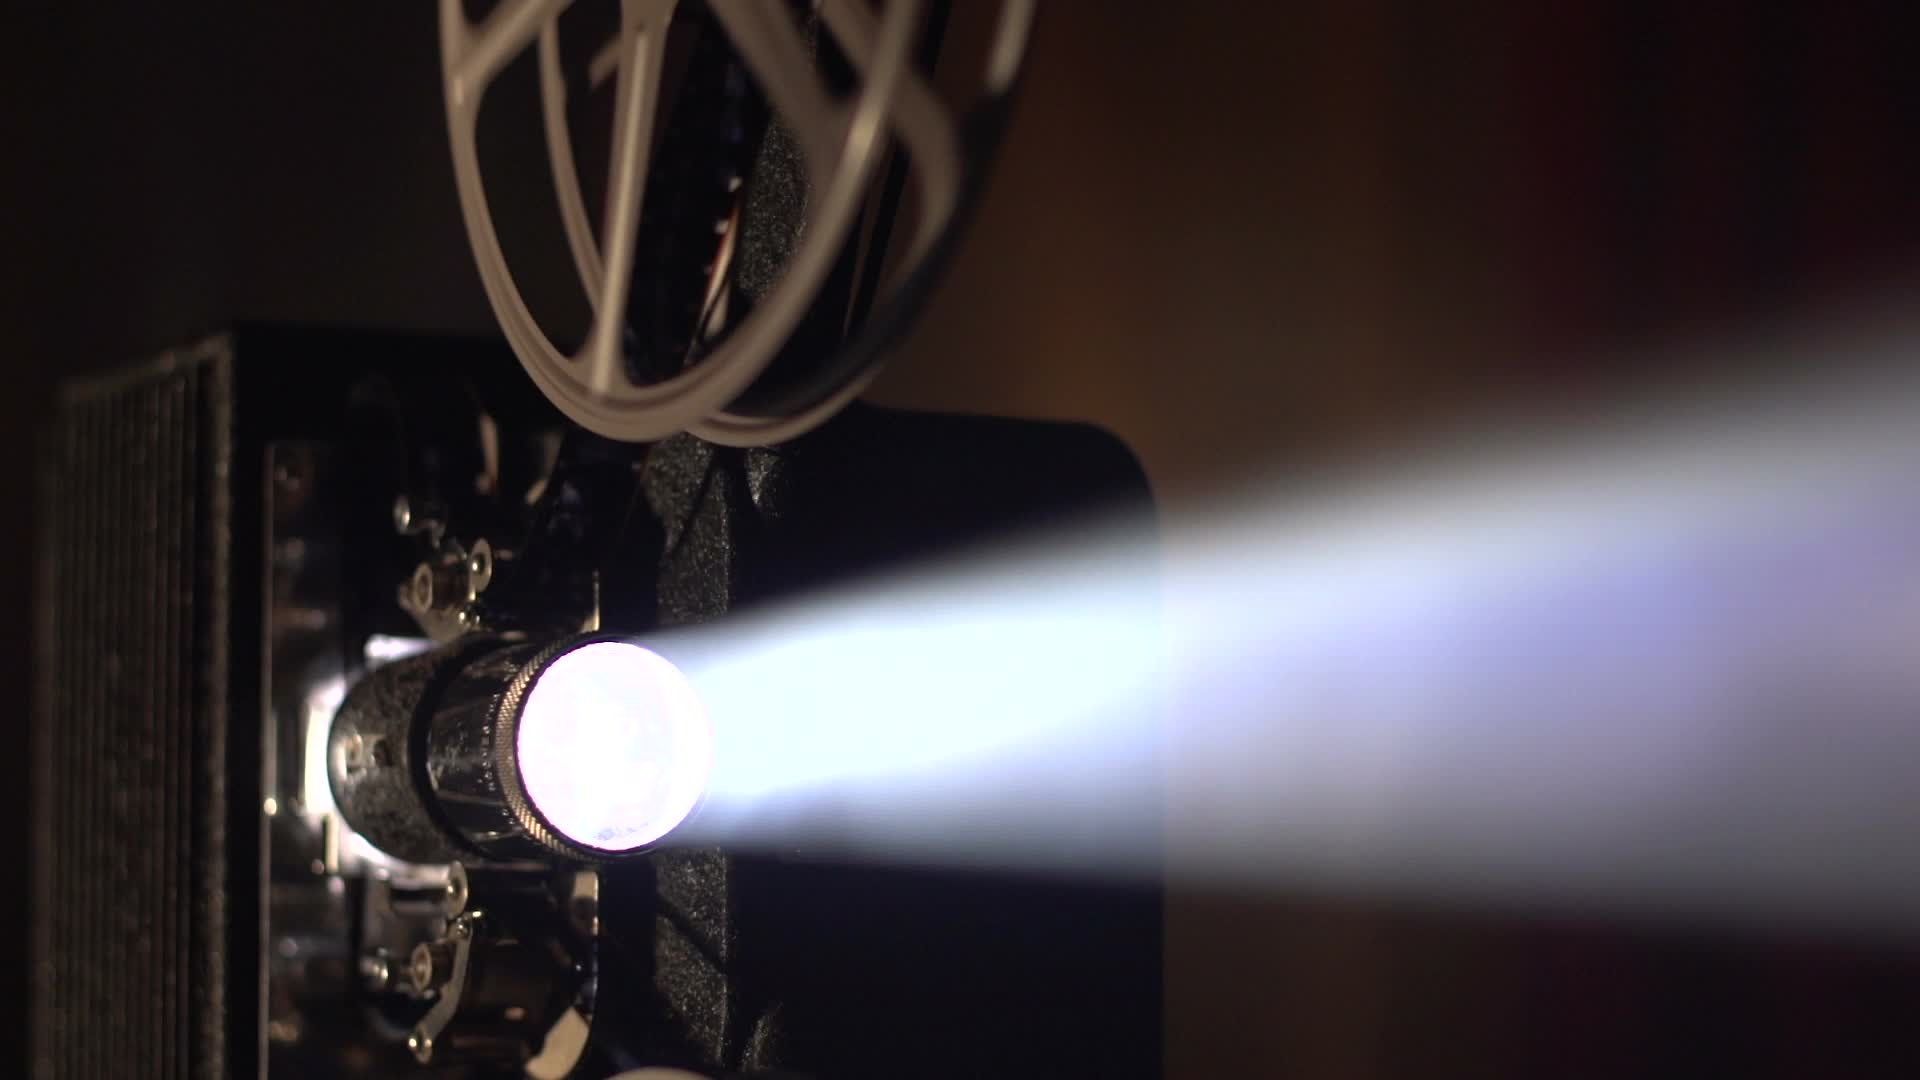 film-projector-lens-and-light-footage-024706786_prevstill.jpeg